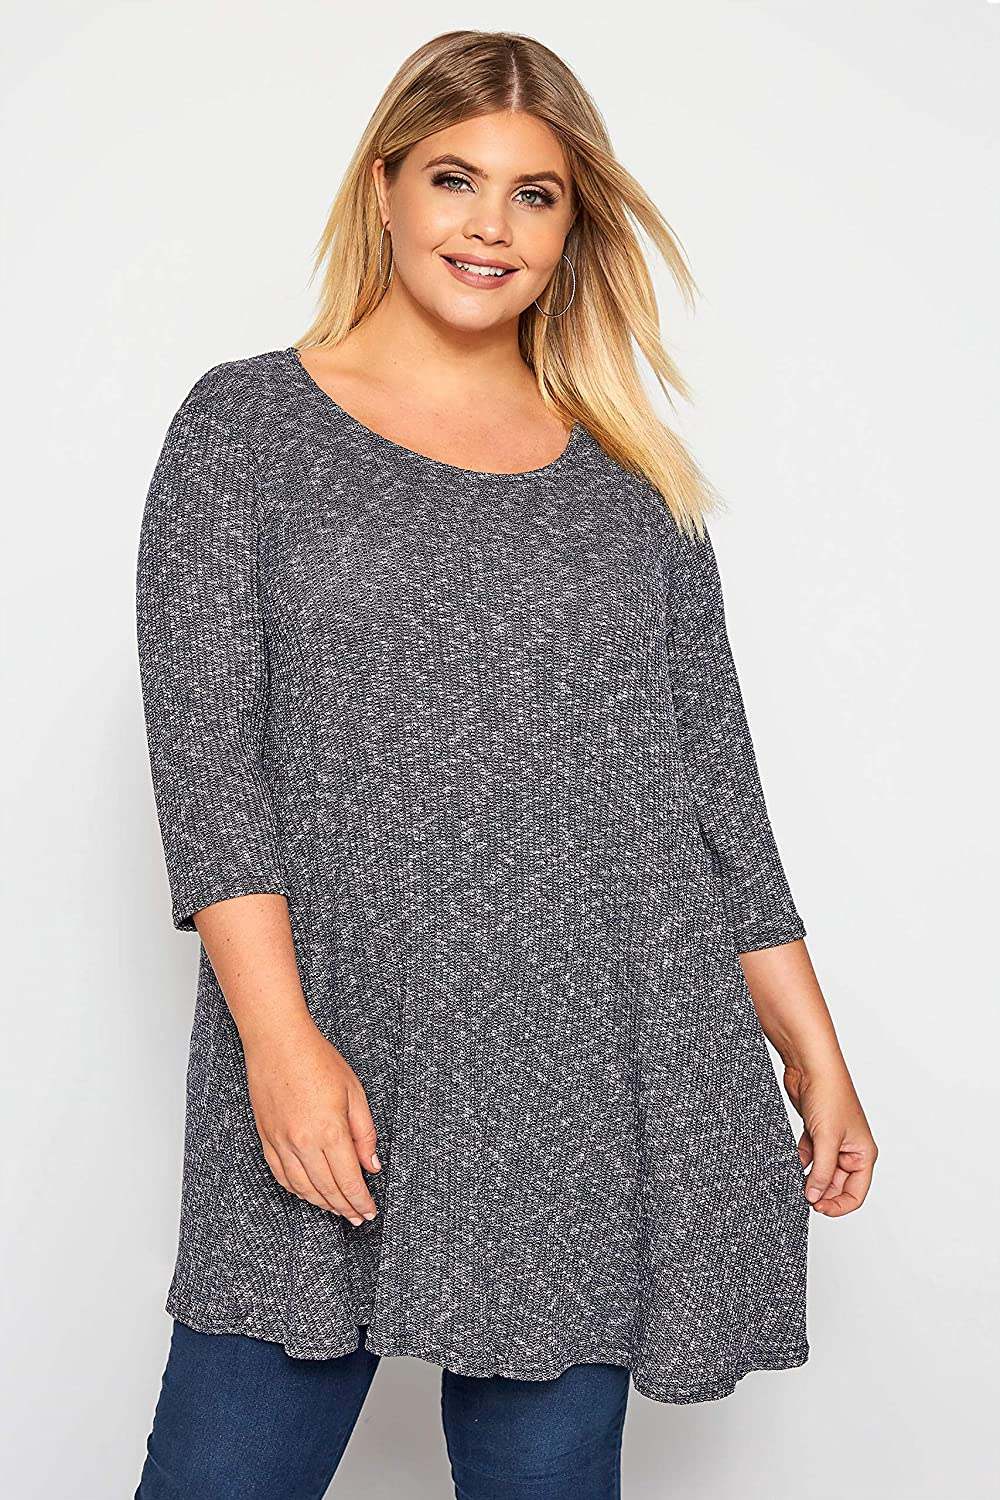 Yours Clothing Womens Marl Ribbed Tunic Top